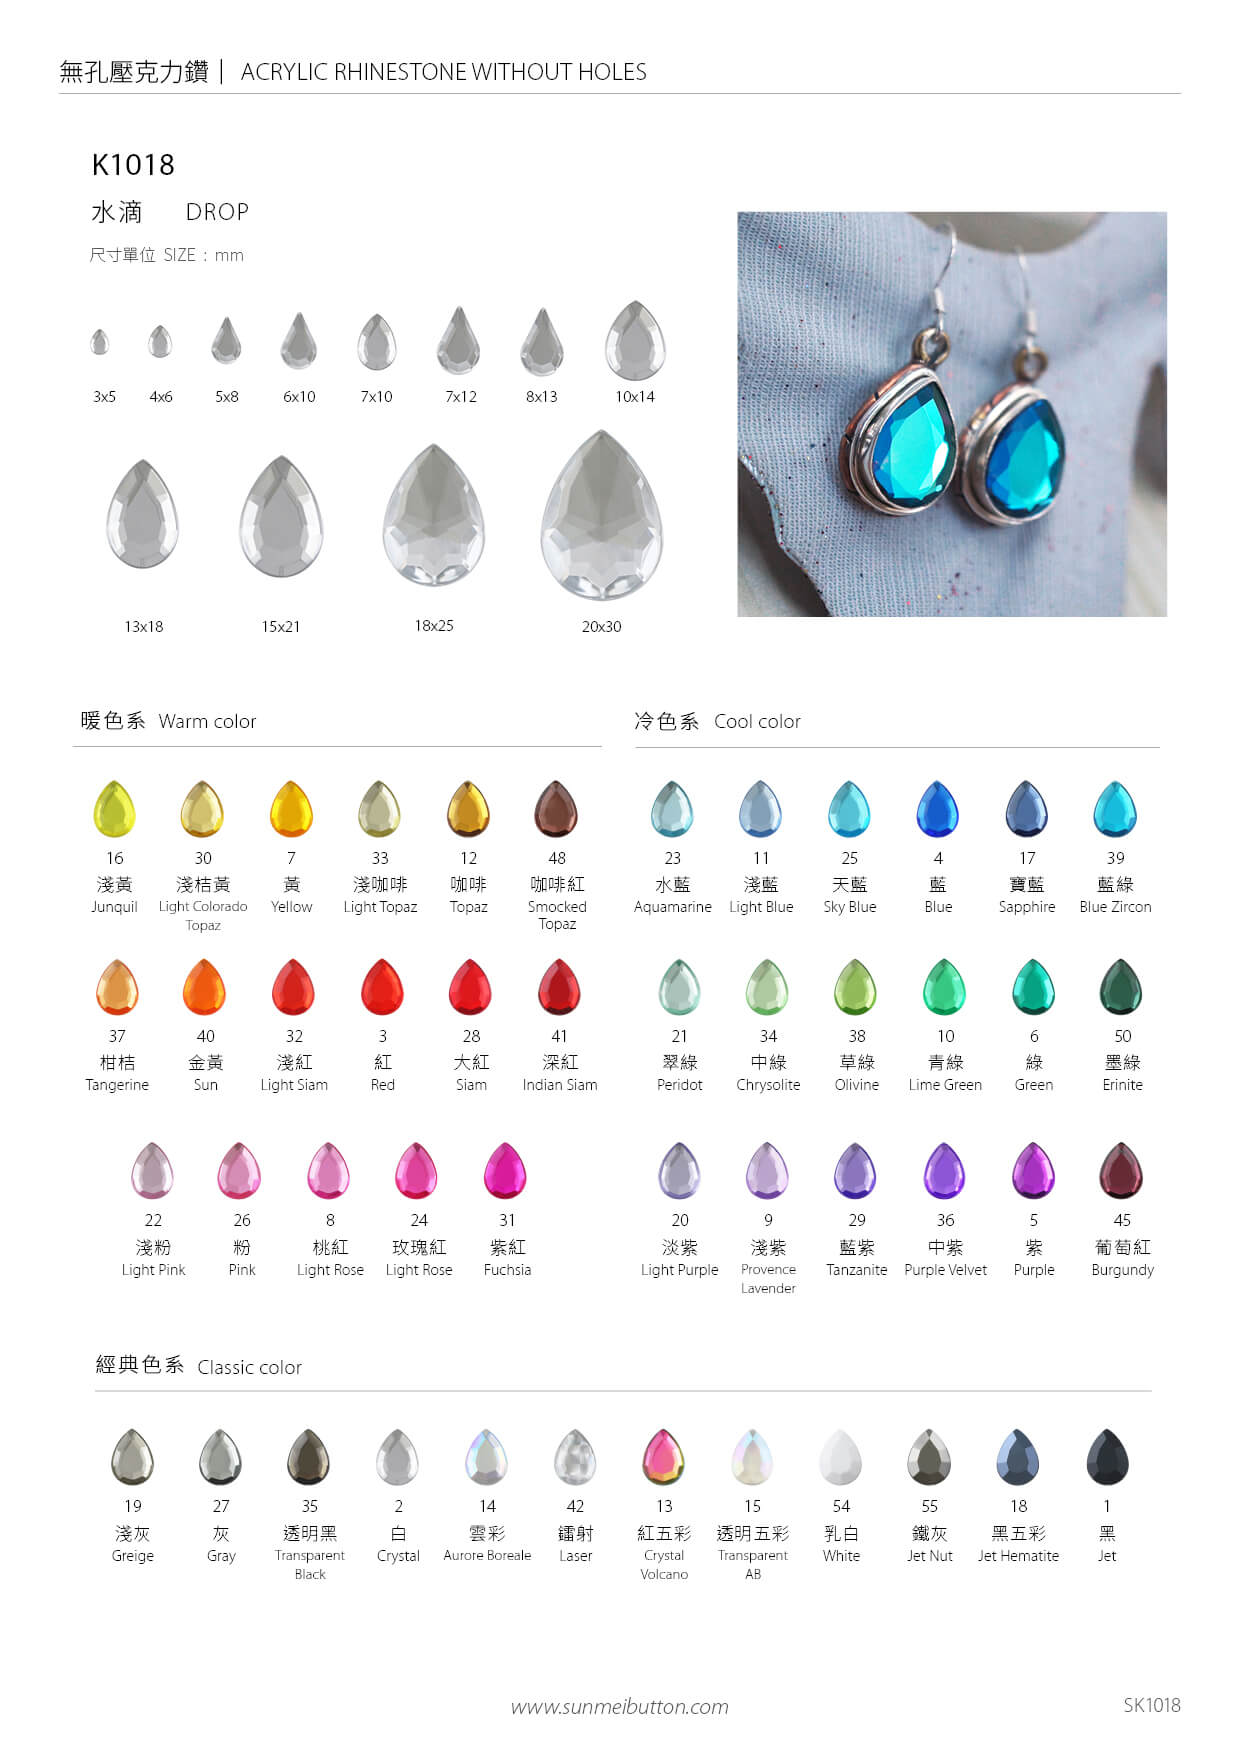 K1018-drop plastic gemstones